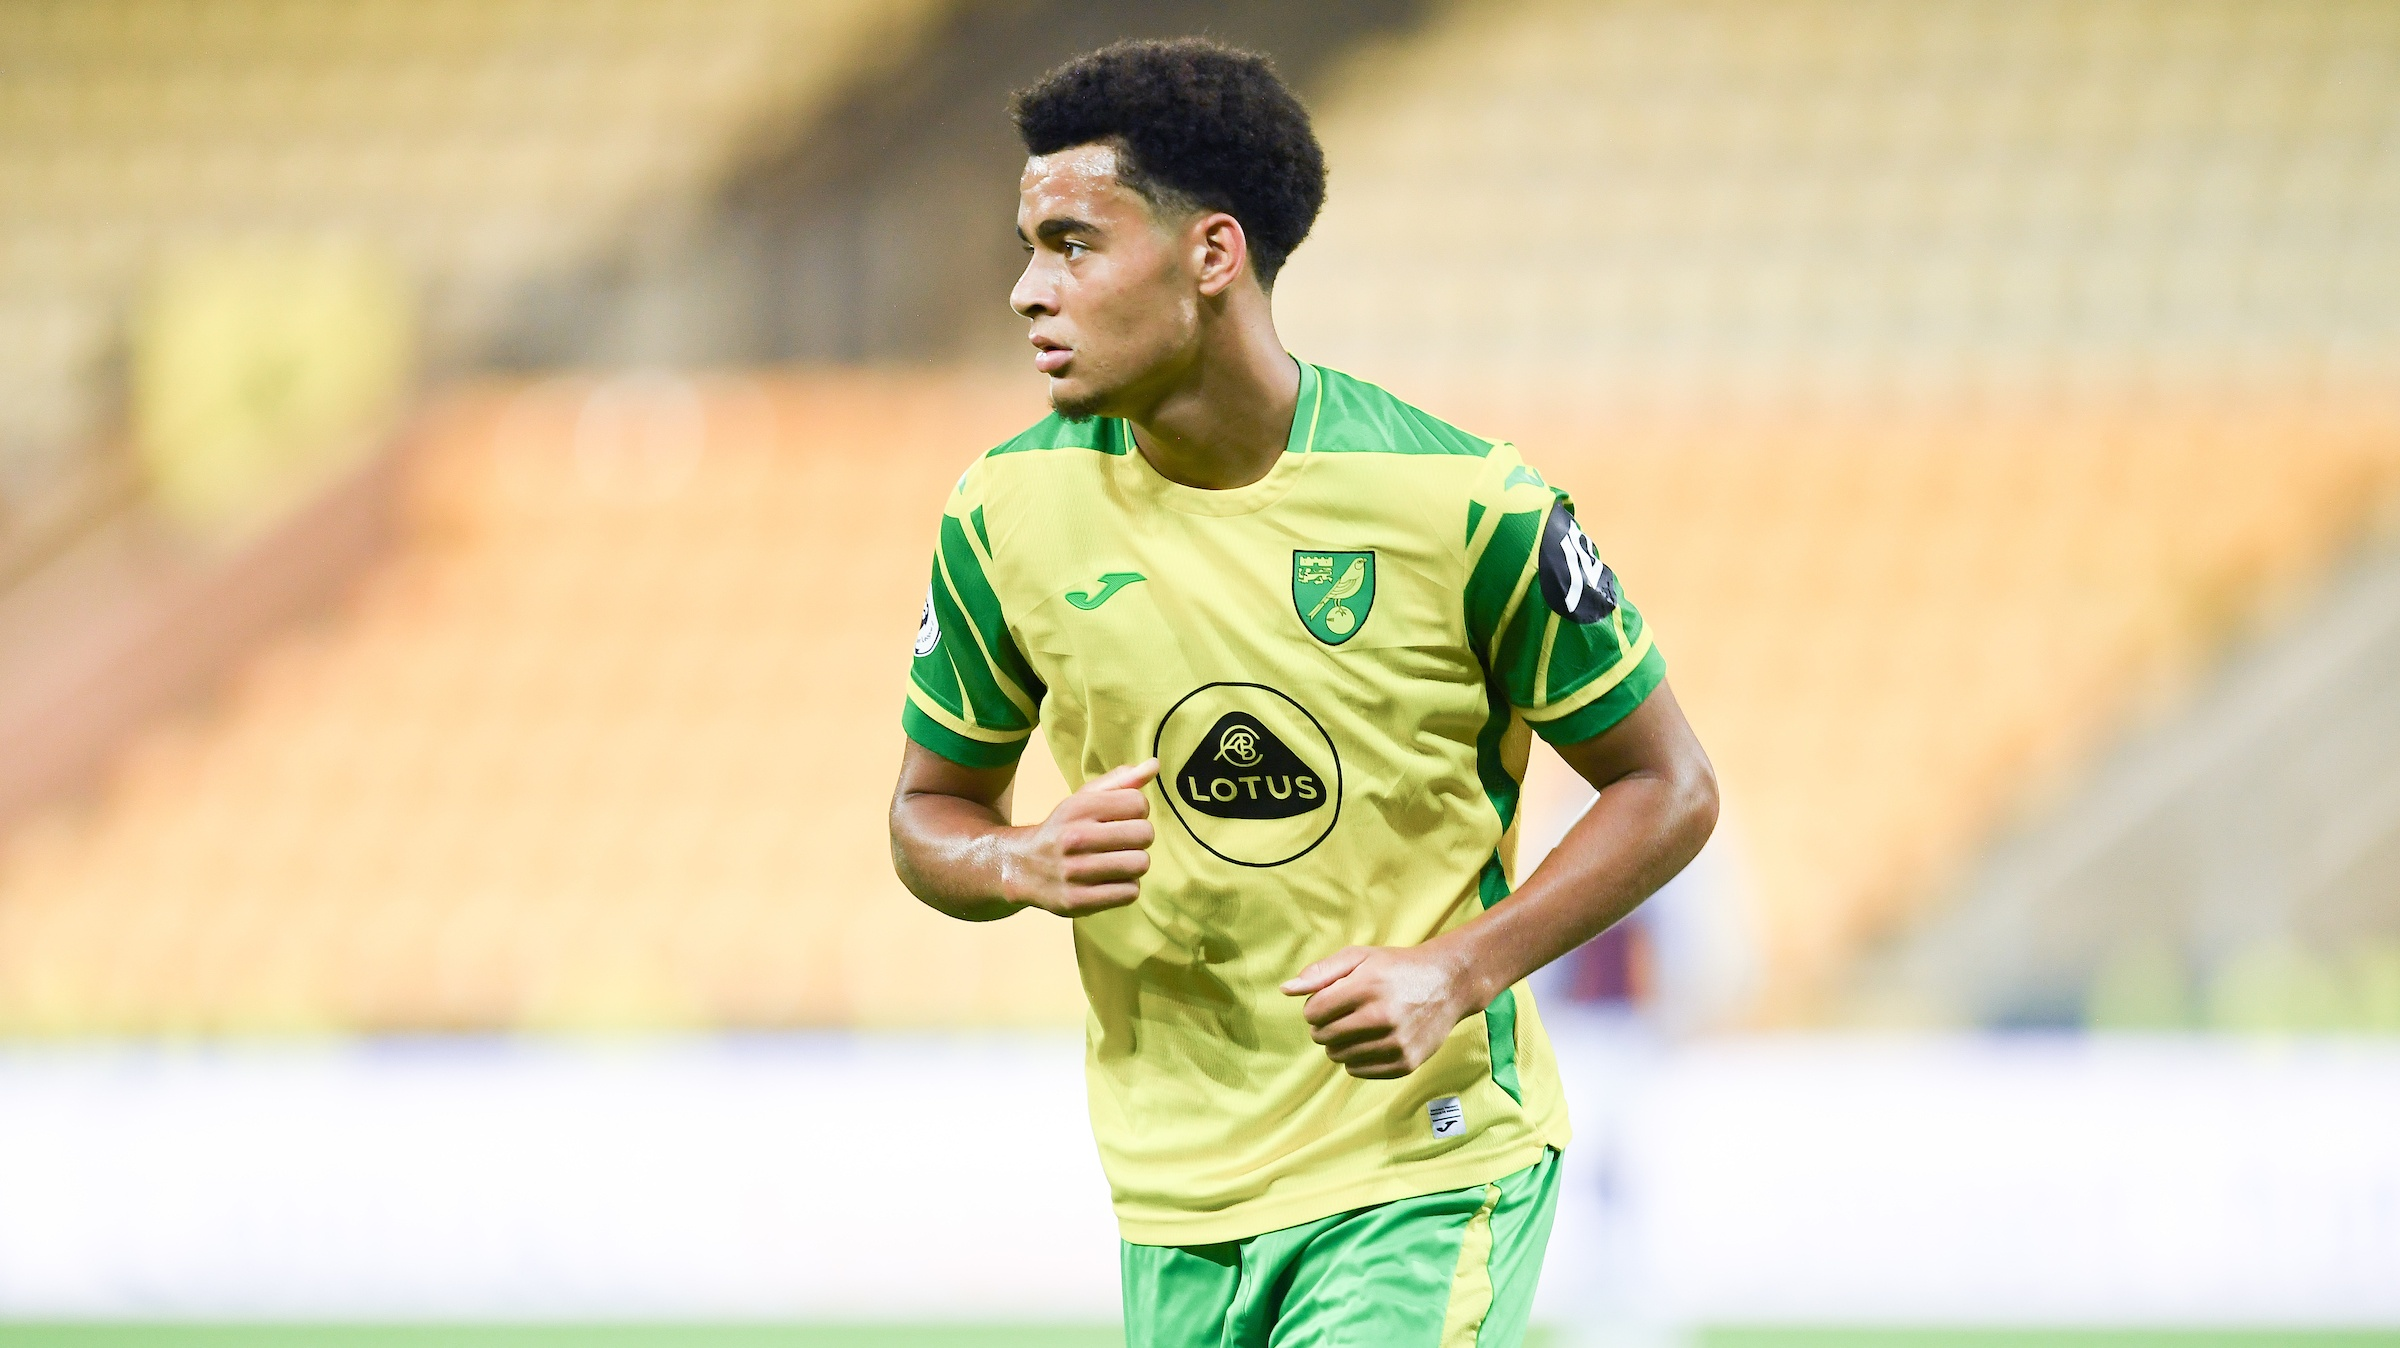 tom-dickson-peters-im-feeling-good-about-my-hat-trick